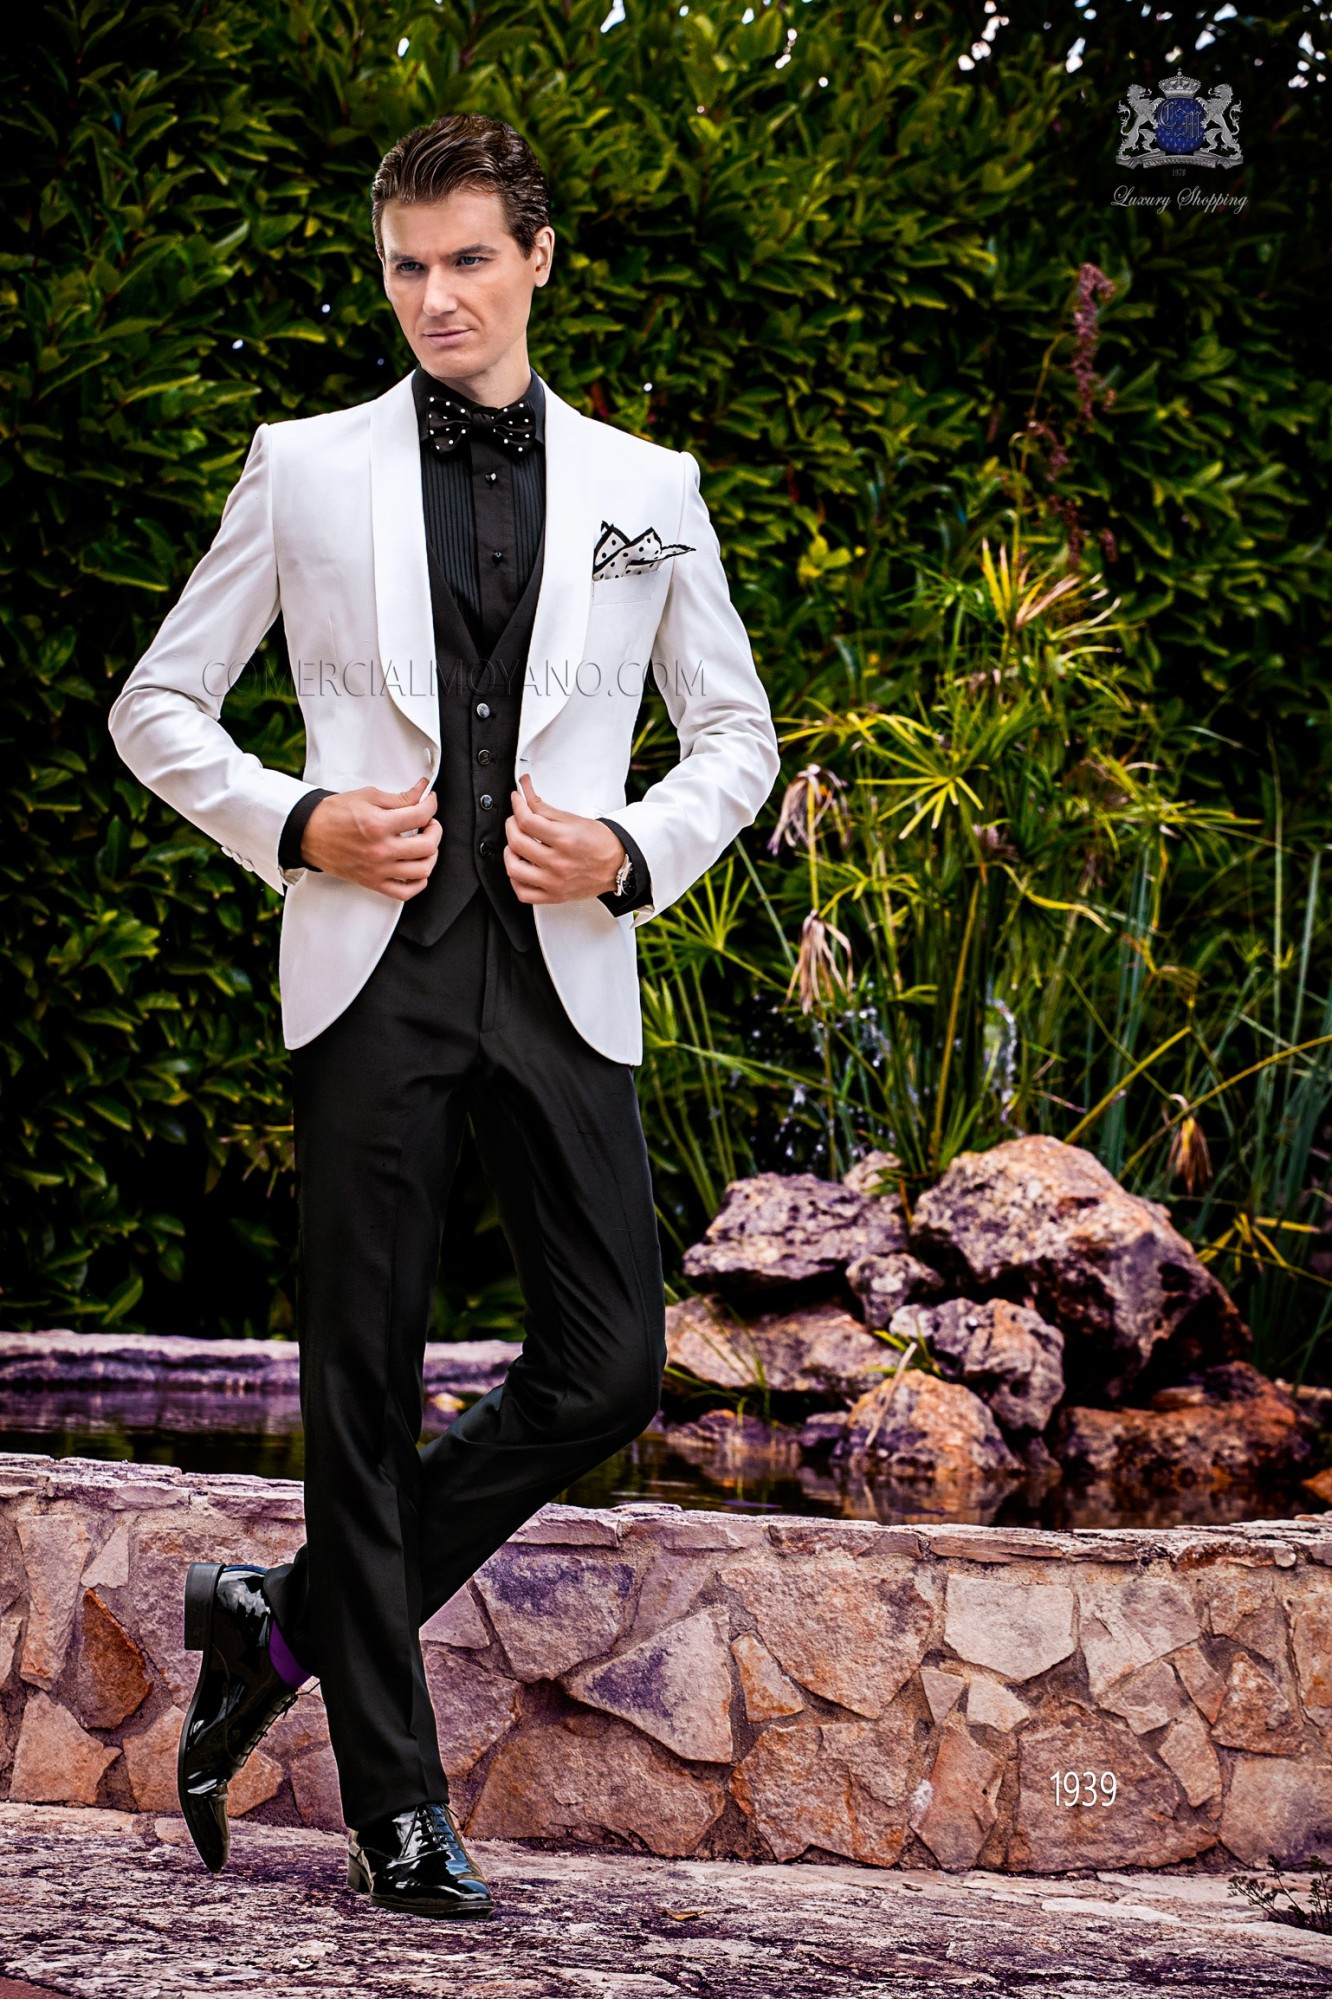 Bespoke white shantung dinner jacket combined with a black trousers model 1939 Ottavio Nuccio Gala